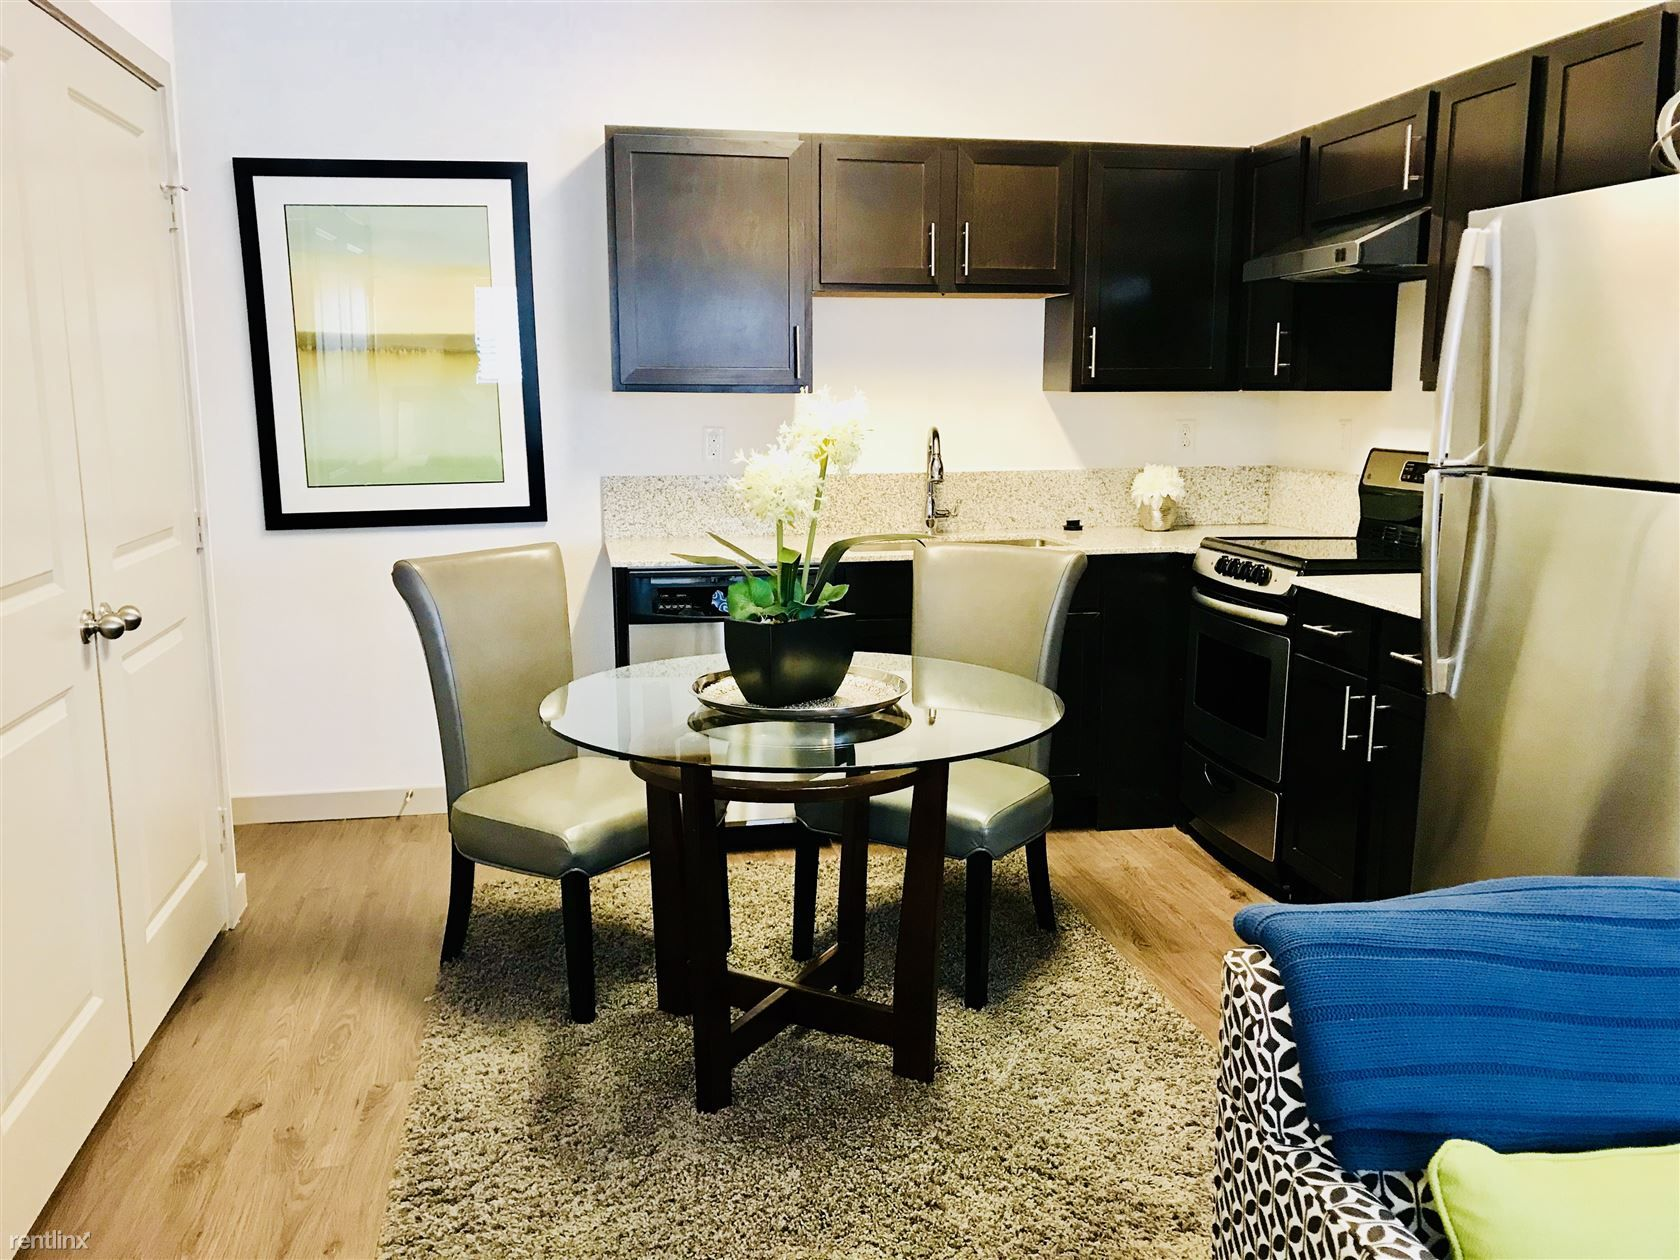 27595 Interstate 10 W for rent